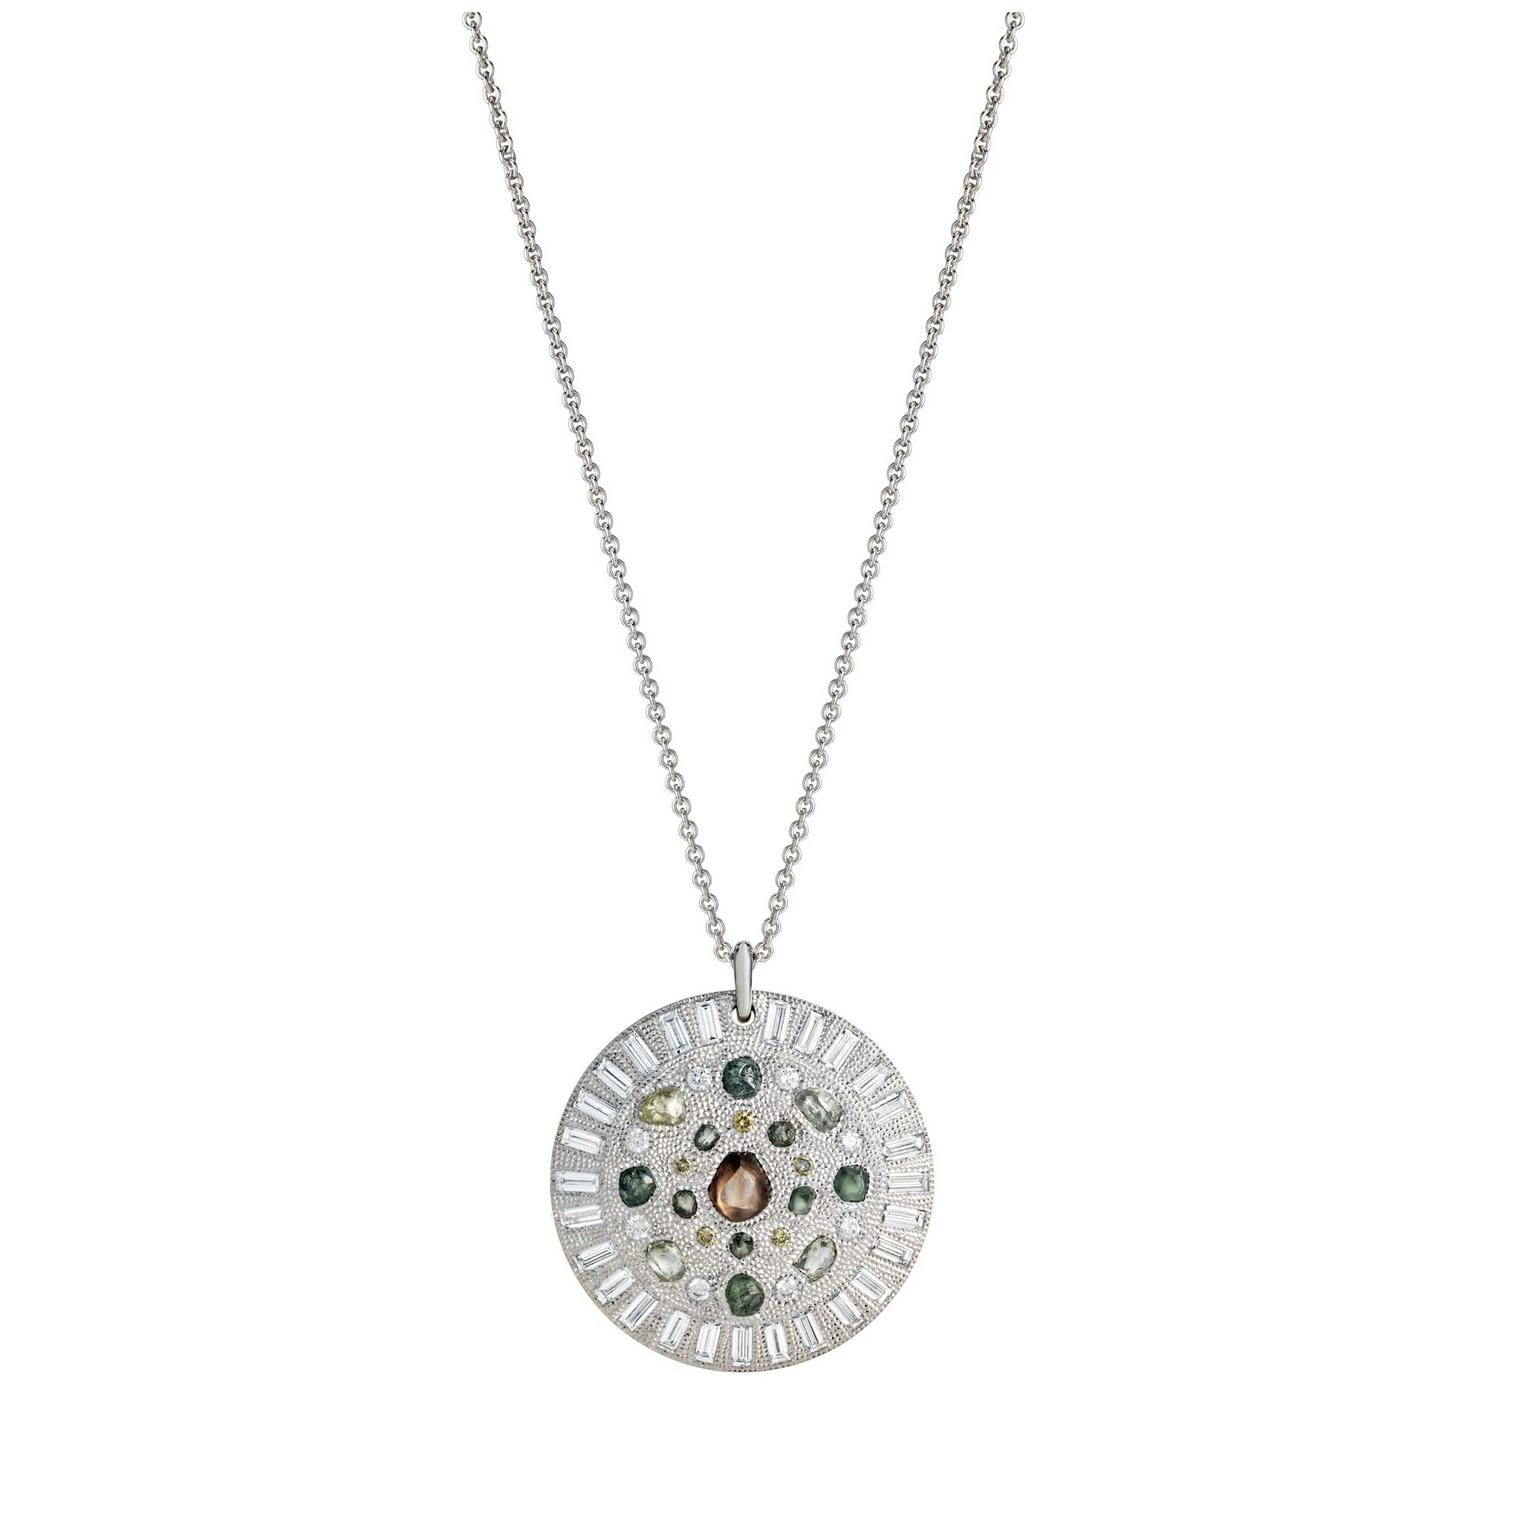 De Beers Talisman rough diamond medallion